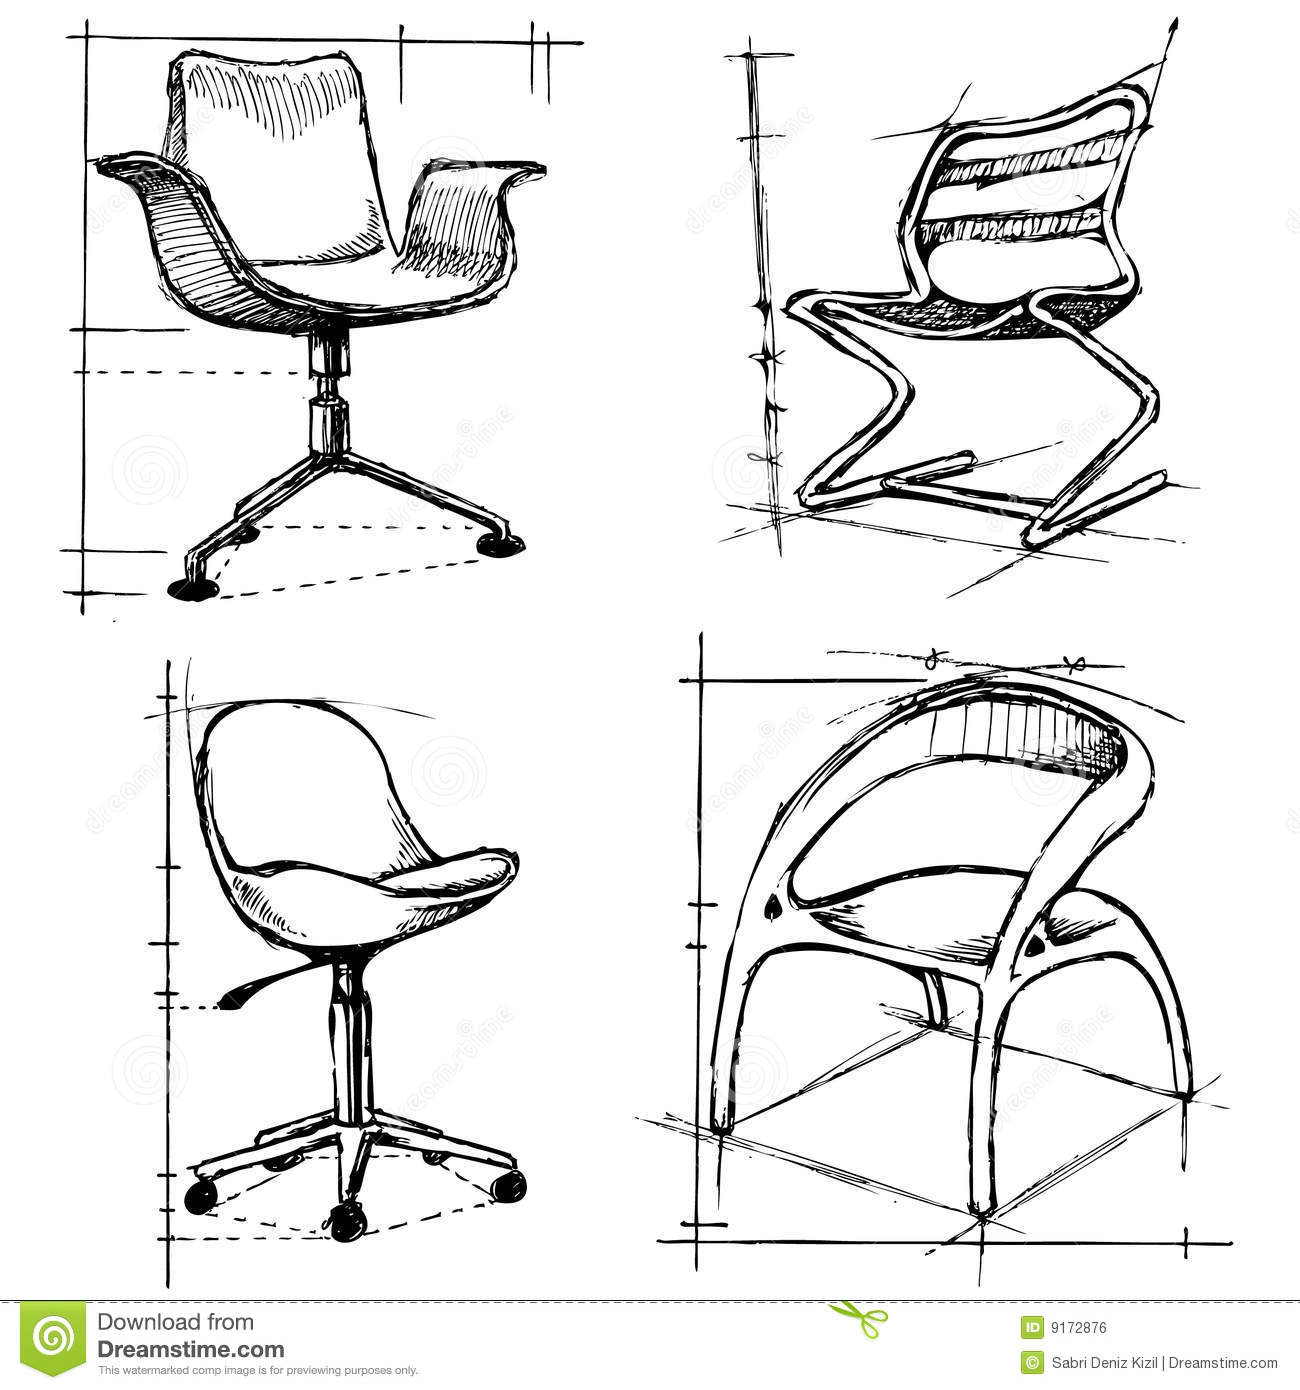 Modern Furniture Drawings modern chairs illustration royalty free stock image - image: 9172876